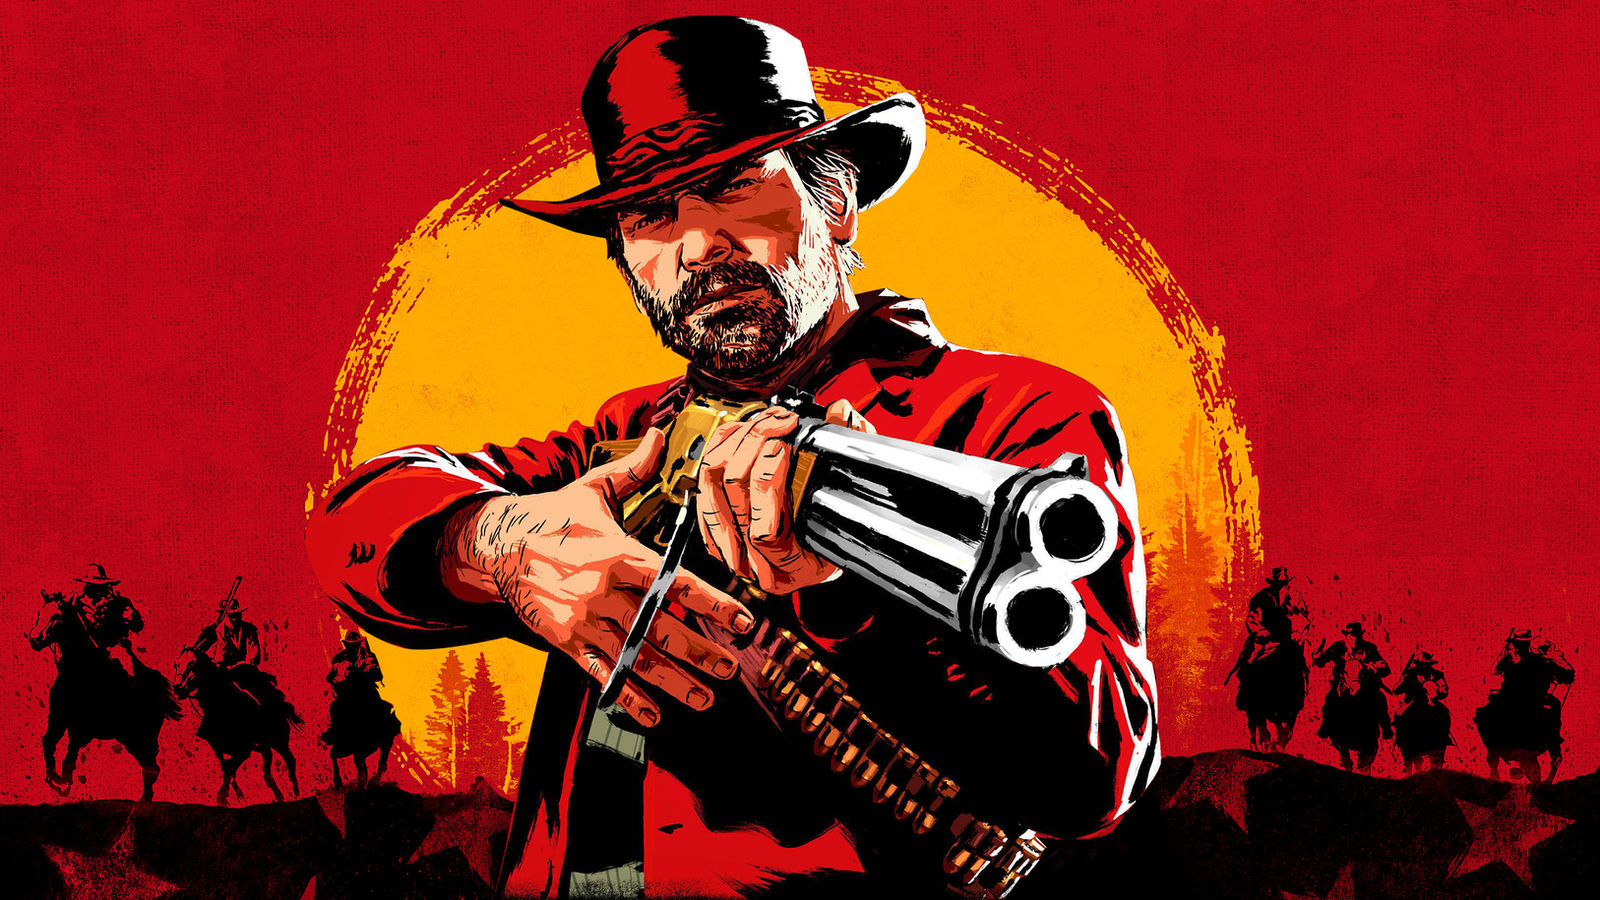 Red Dead Redemption 2 Wallpaper V 2 By 3demerzel On Deviantart